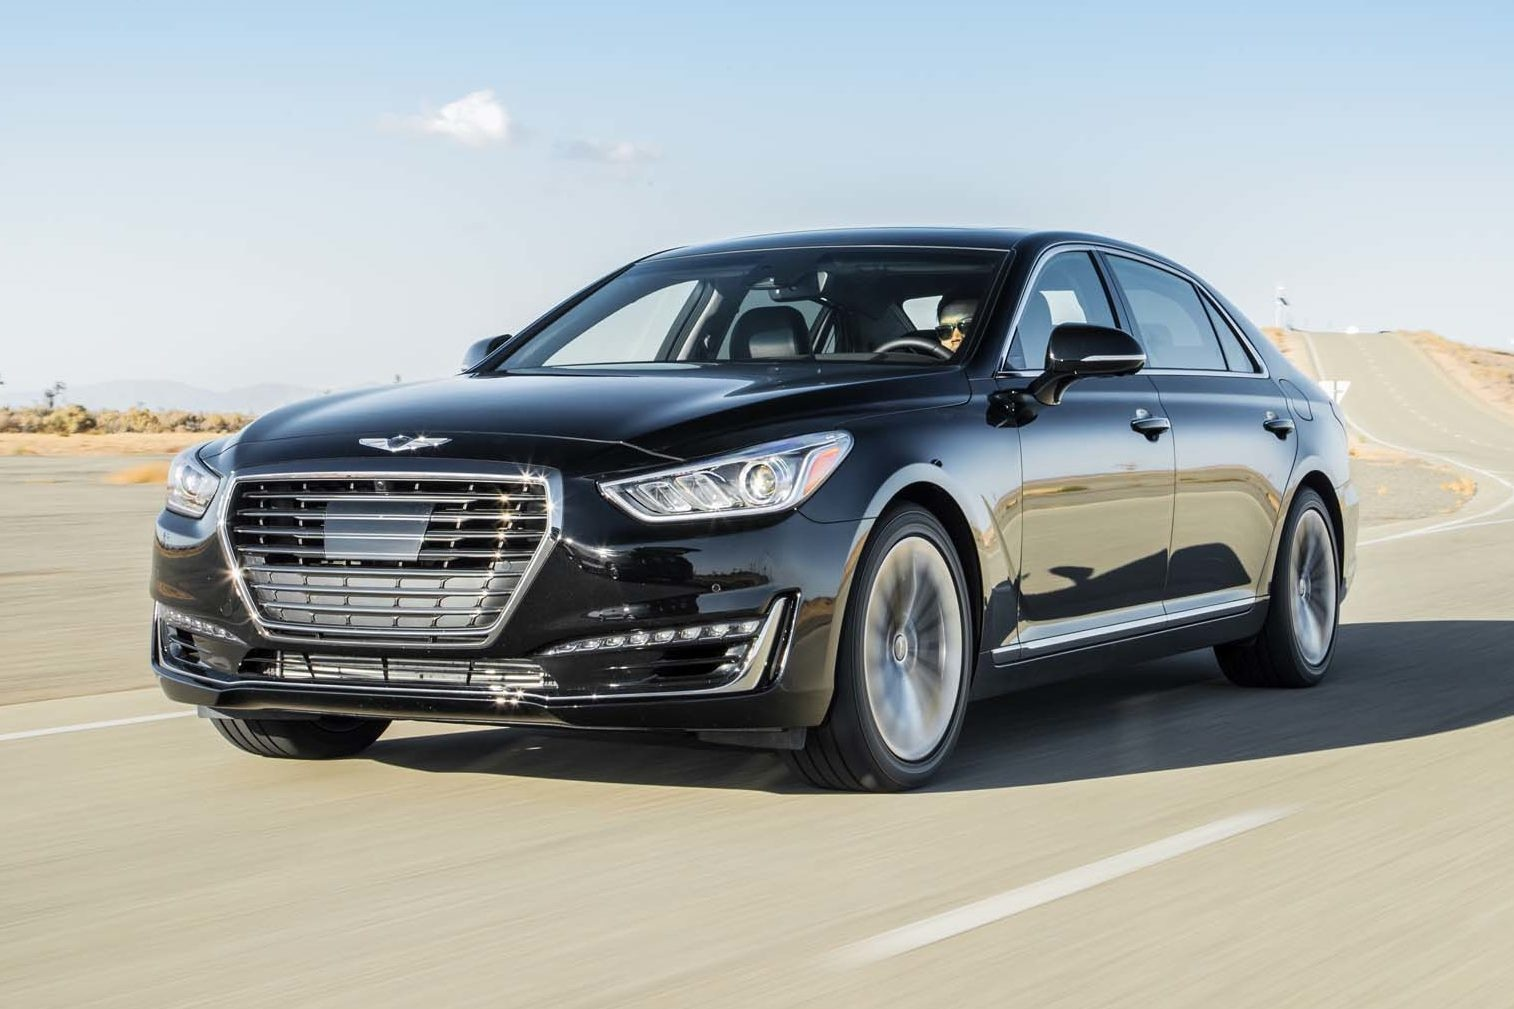 2017 Genesis G90 33T HTRAC Premium Front Three Quarter In Motion 02 E1477947344964